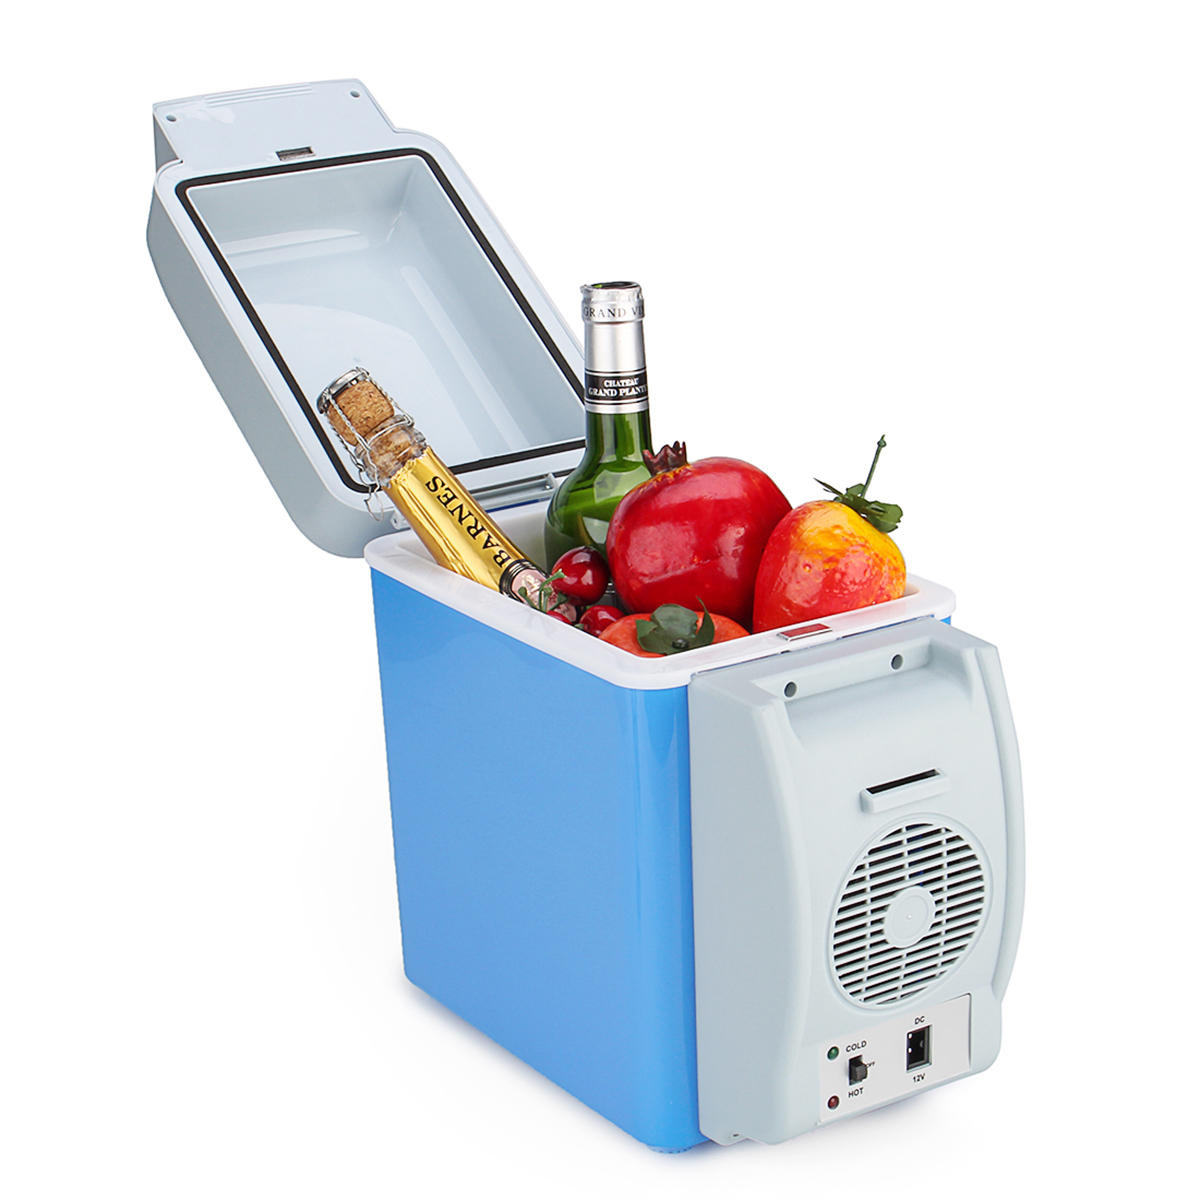 Small Portable Fridge 12v 7 5l Blue Portable Car Refrigerator Freezer Cooler Warmer Box Camping Fridge